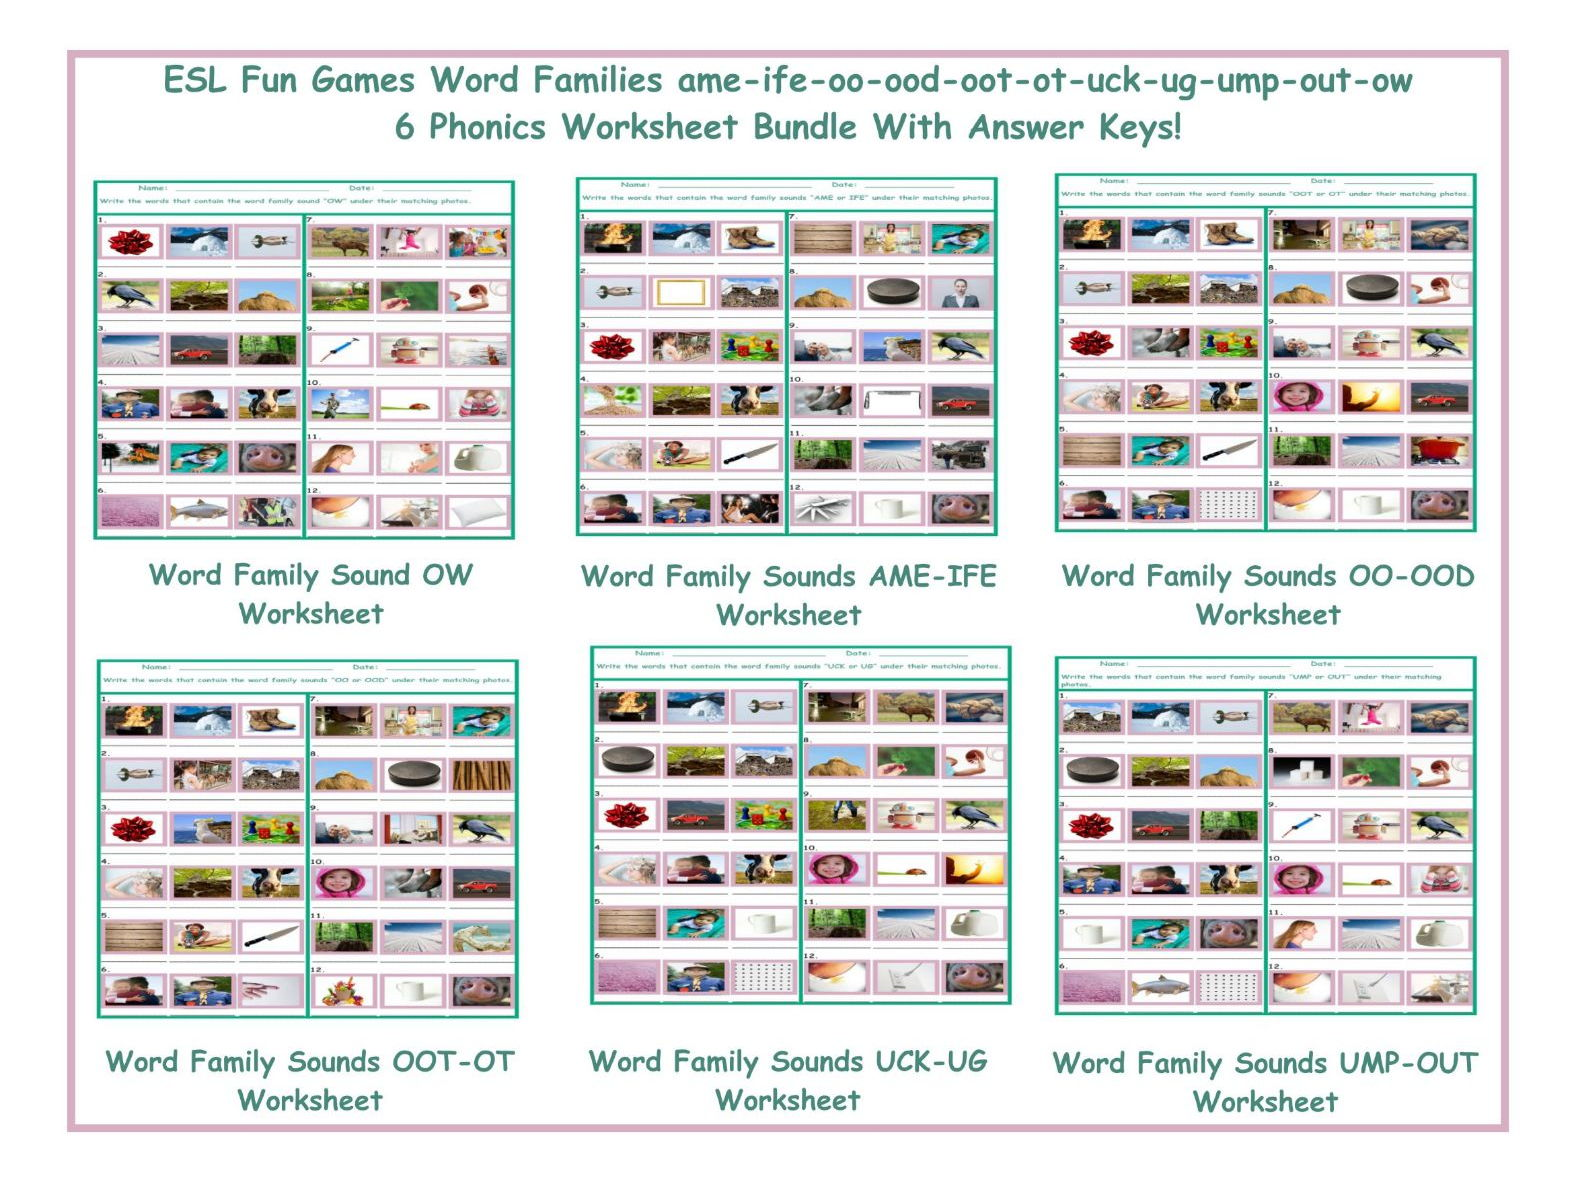 worksheet Ow Worksheets word family sound ow worksheet by eslfungames teaching resources tes